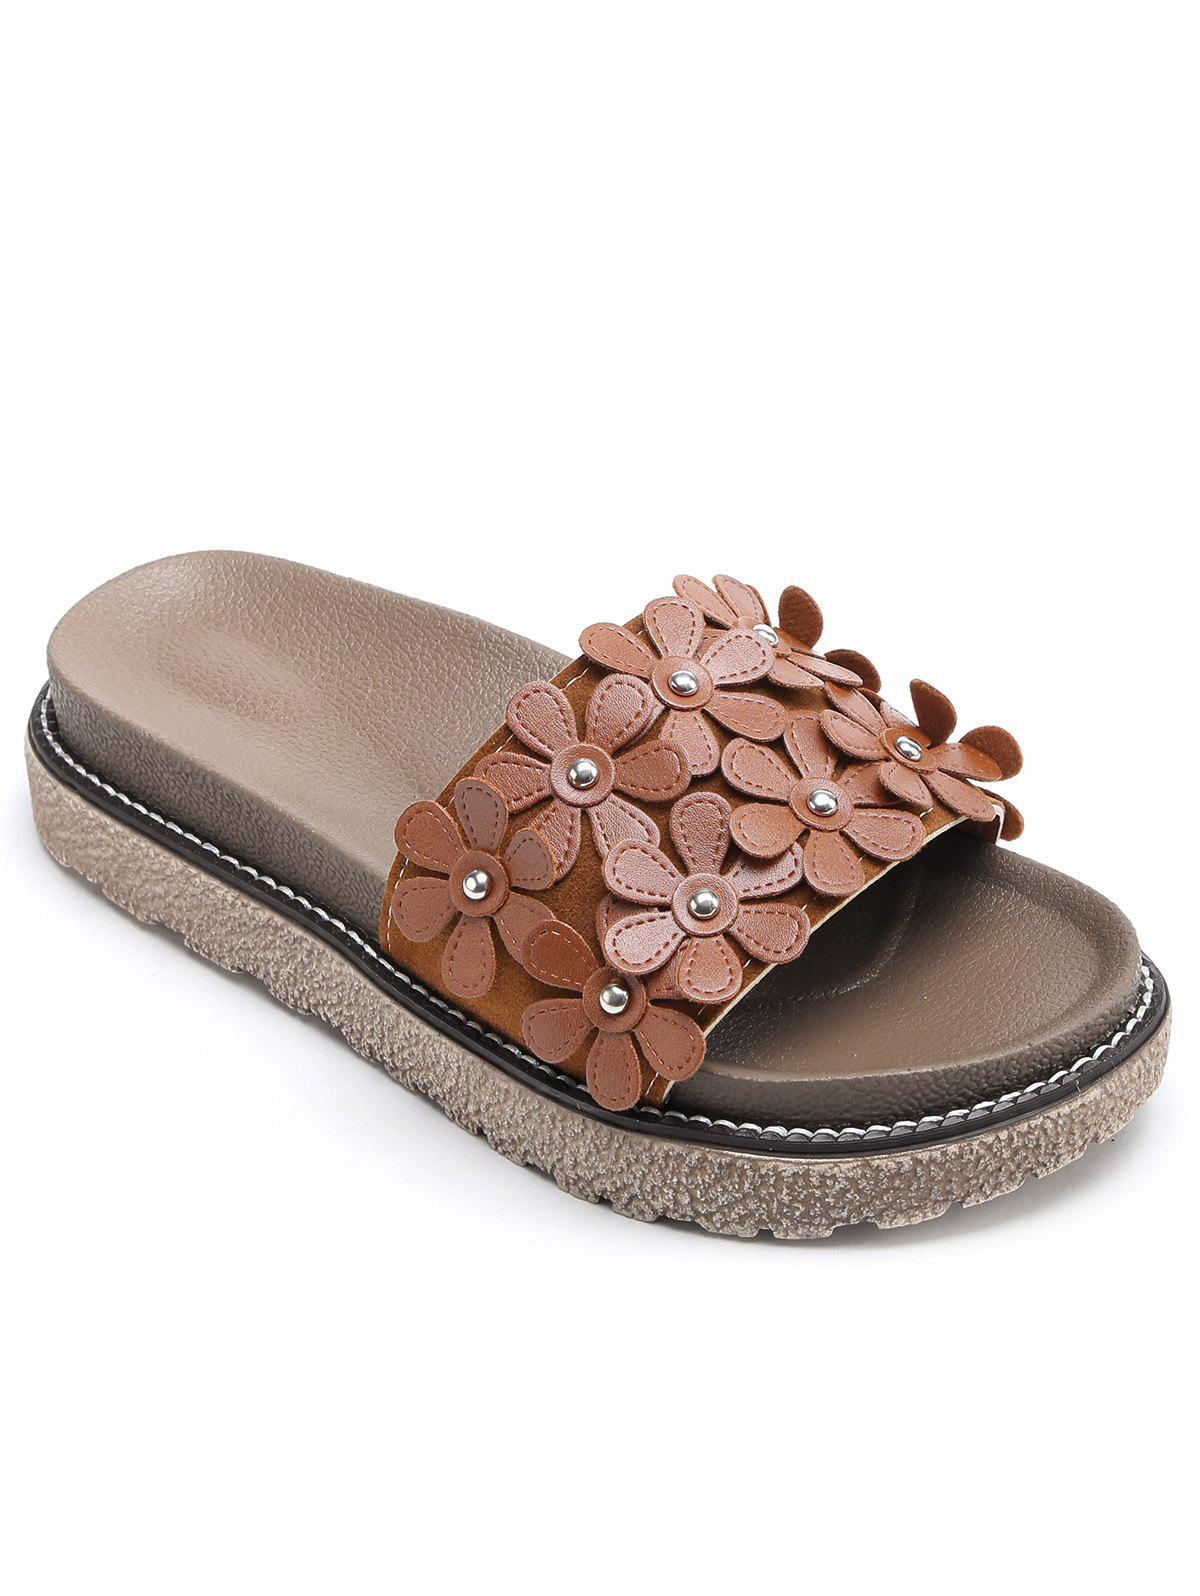 Leisure Flowers Holiday Beach Slides - BROWN 35